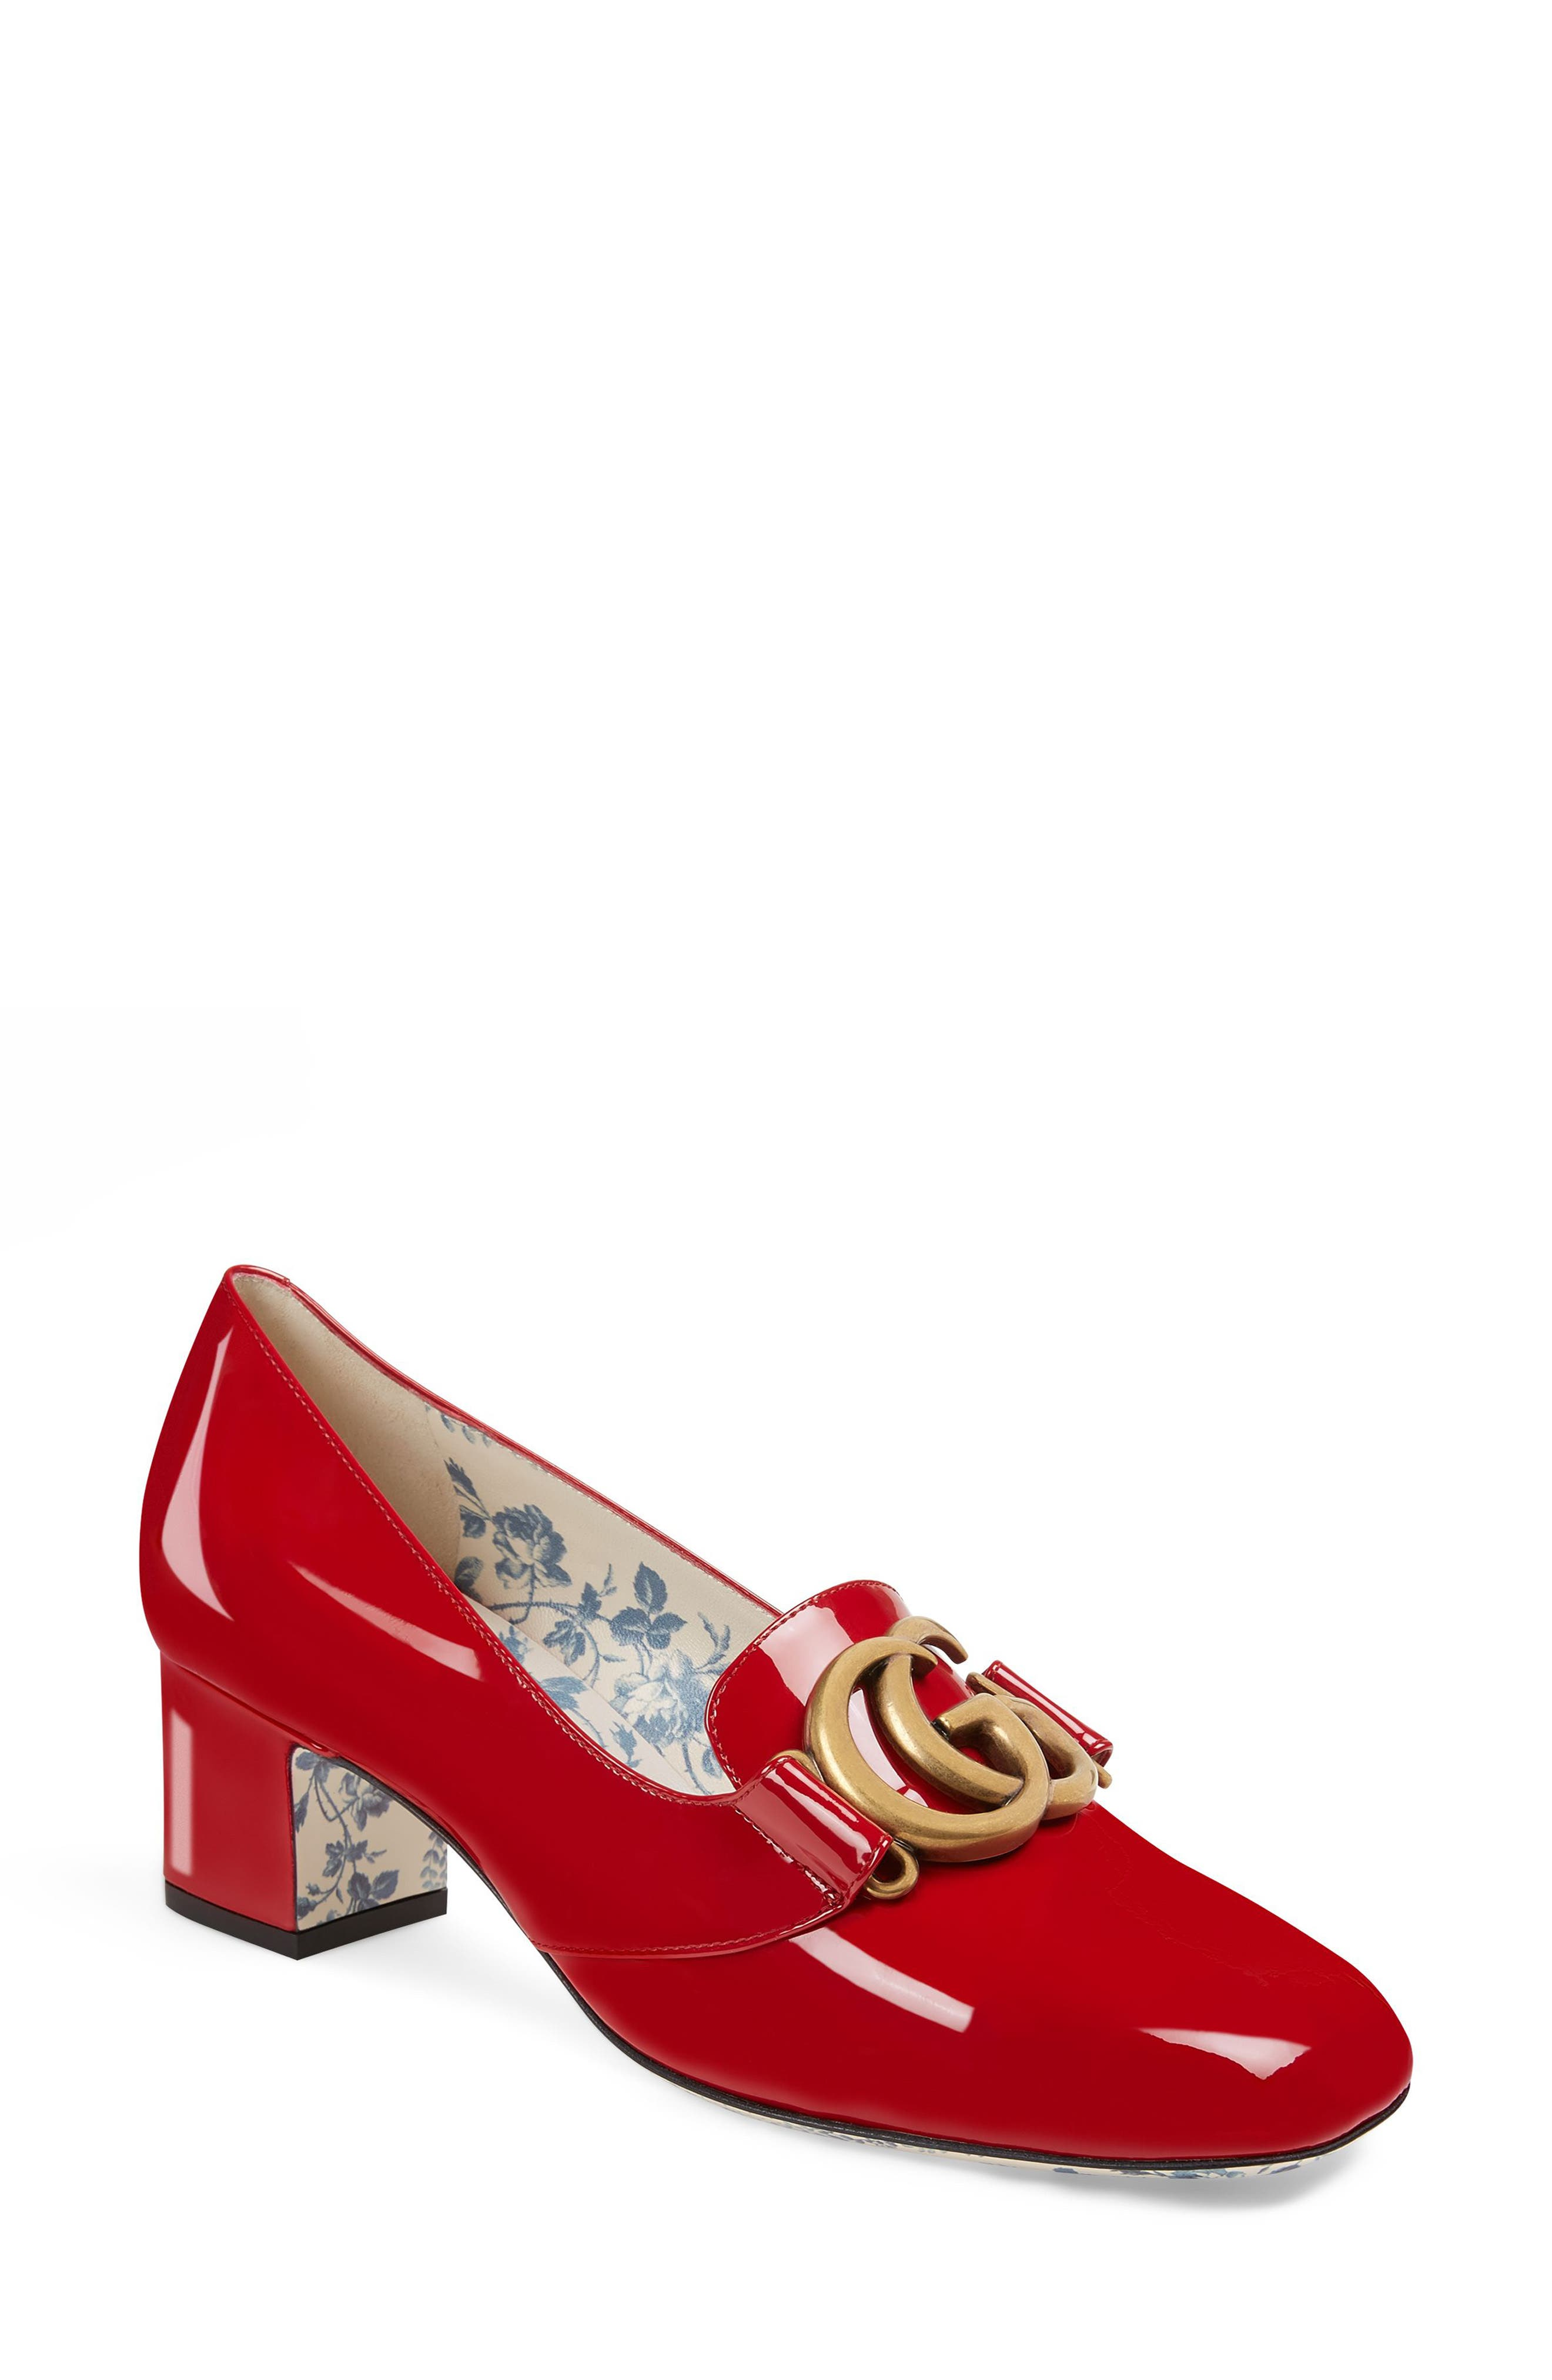 Gucci Loafer Pump - Red